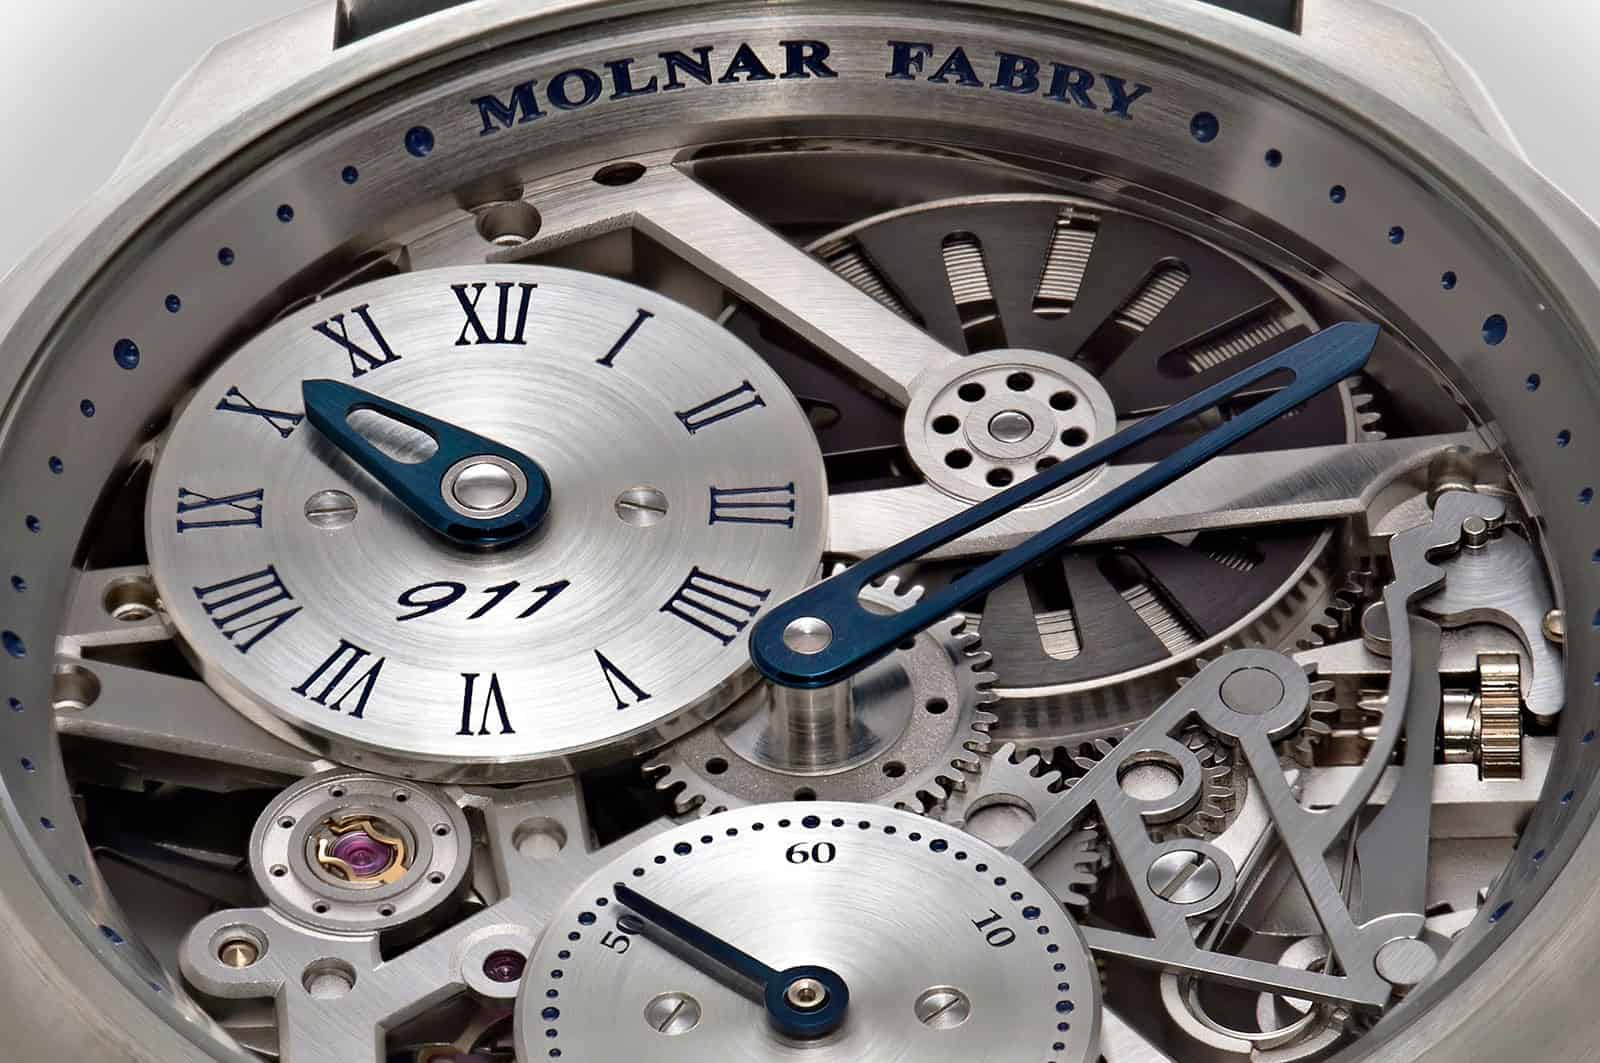 Molnar Fabry Time Machine Regulator 911 6